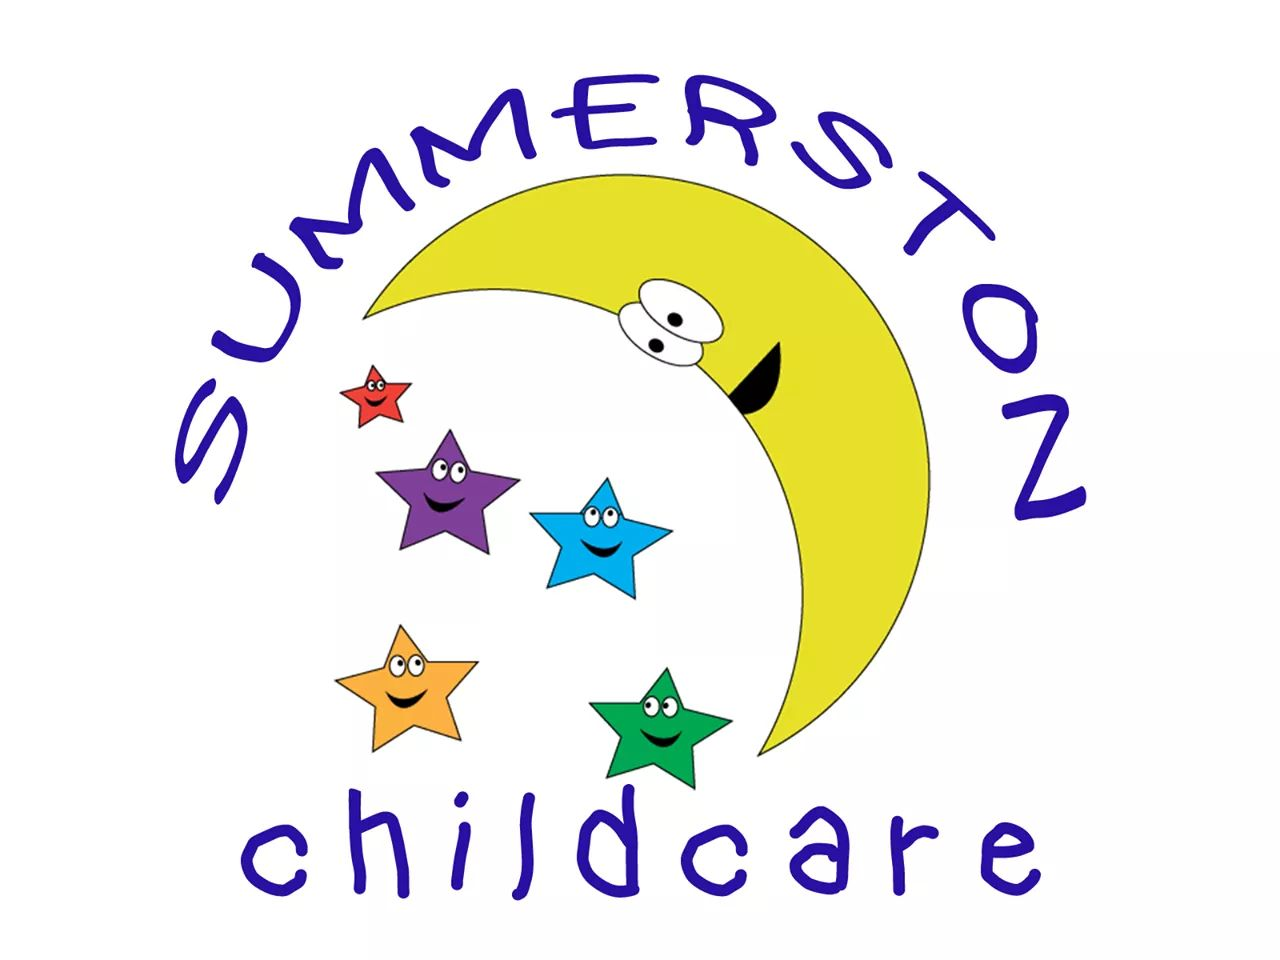 Summerston Childcare Limited